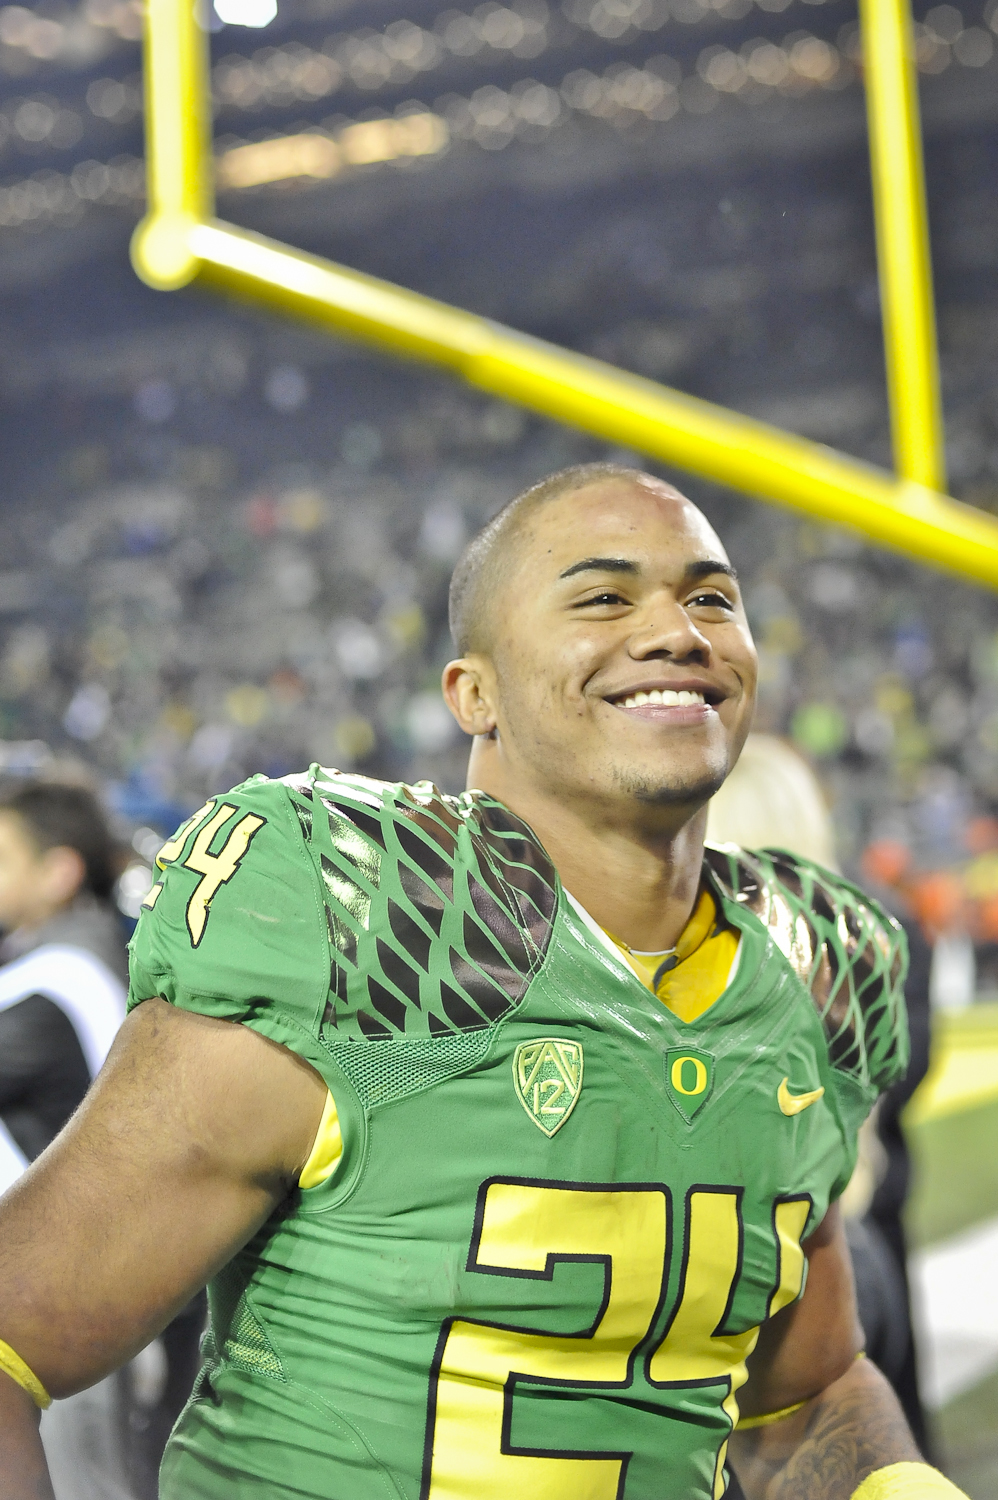 There are big things ahead for Thomas Tyner